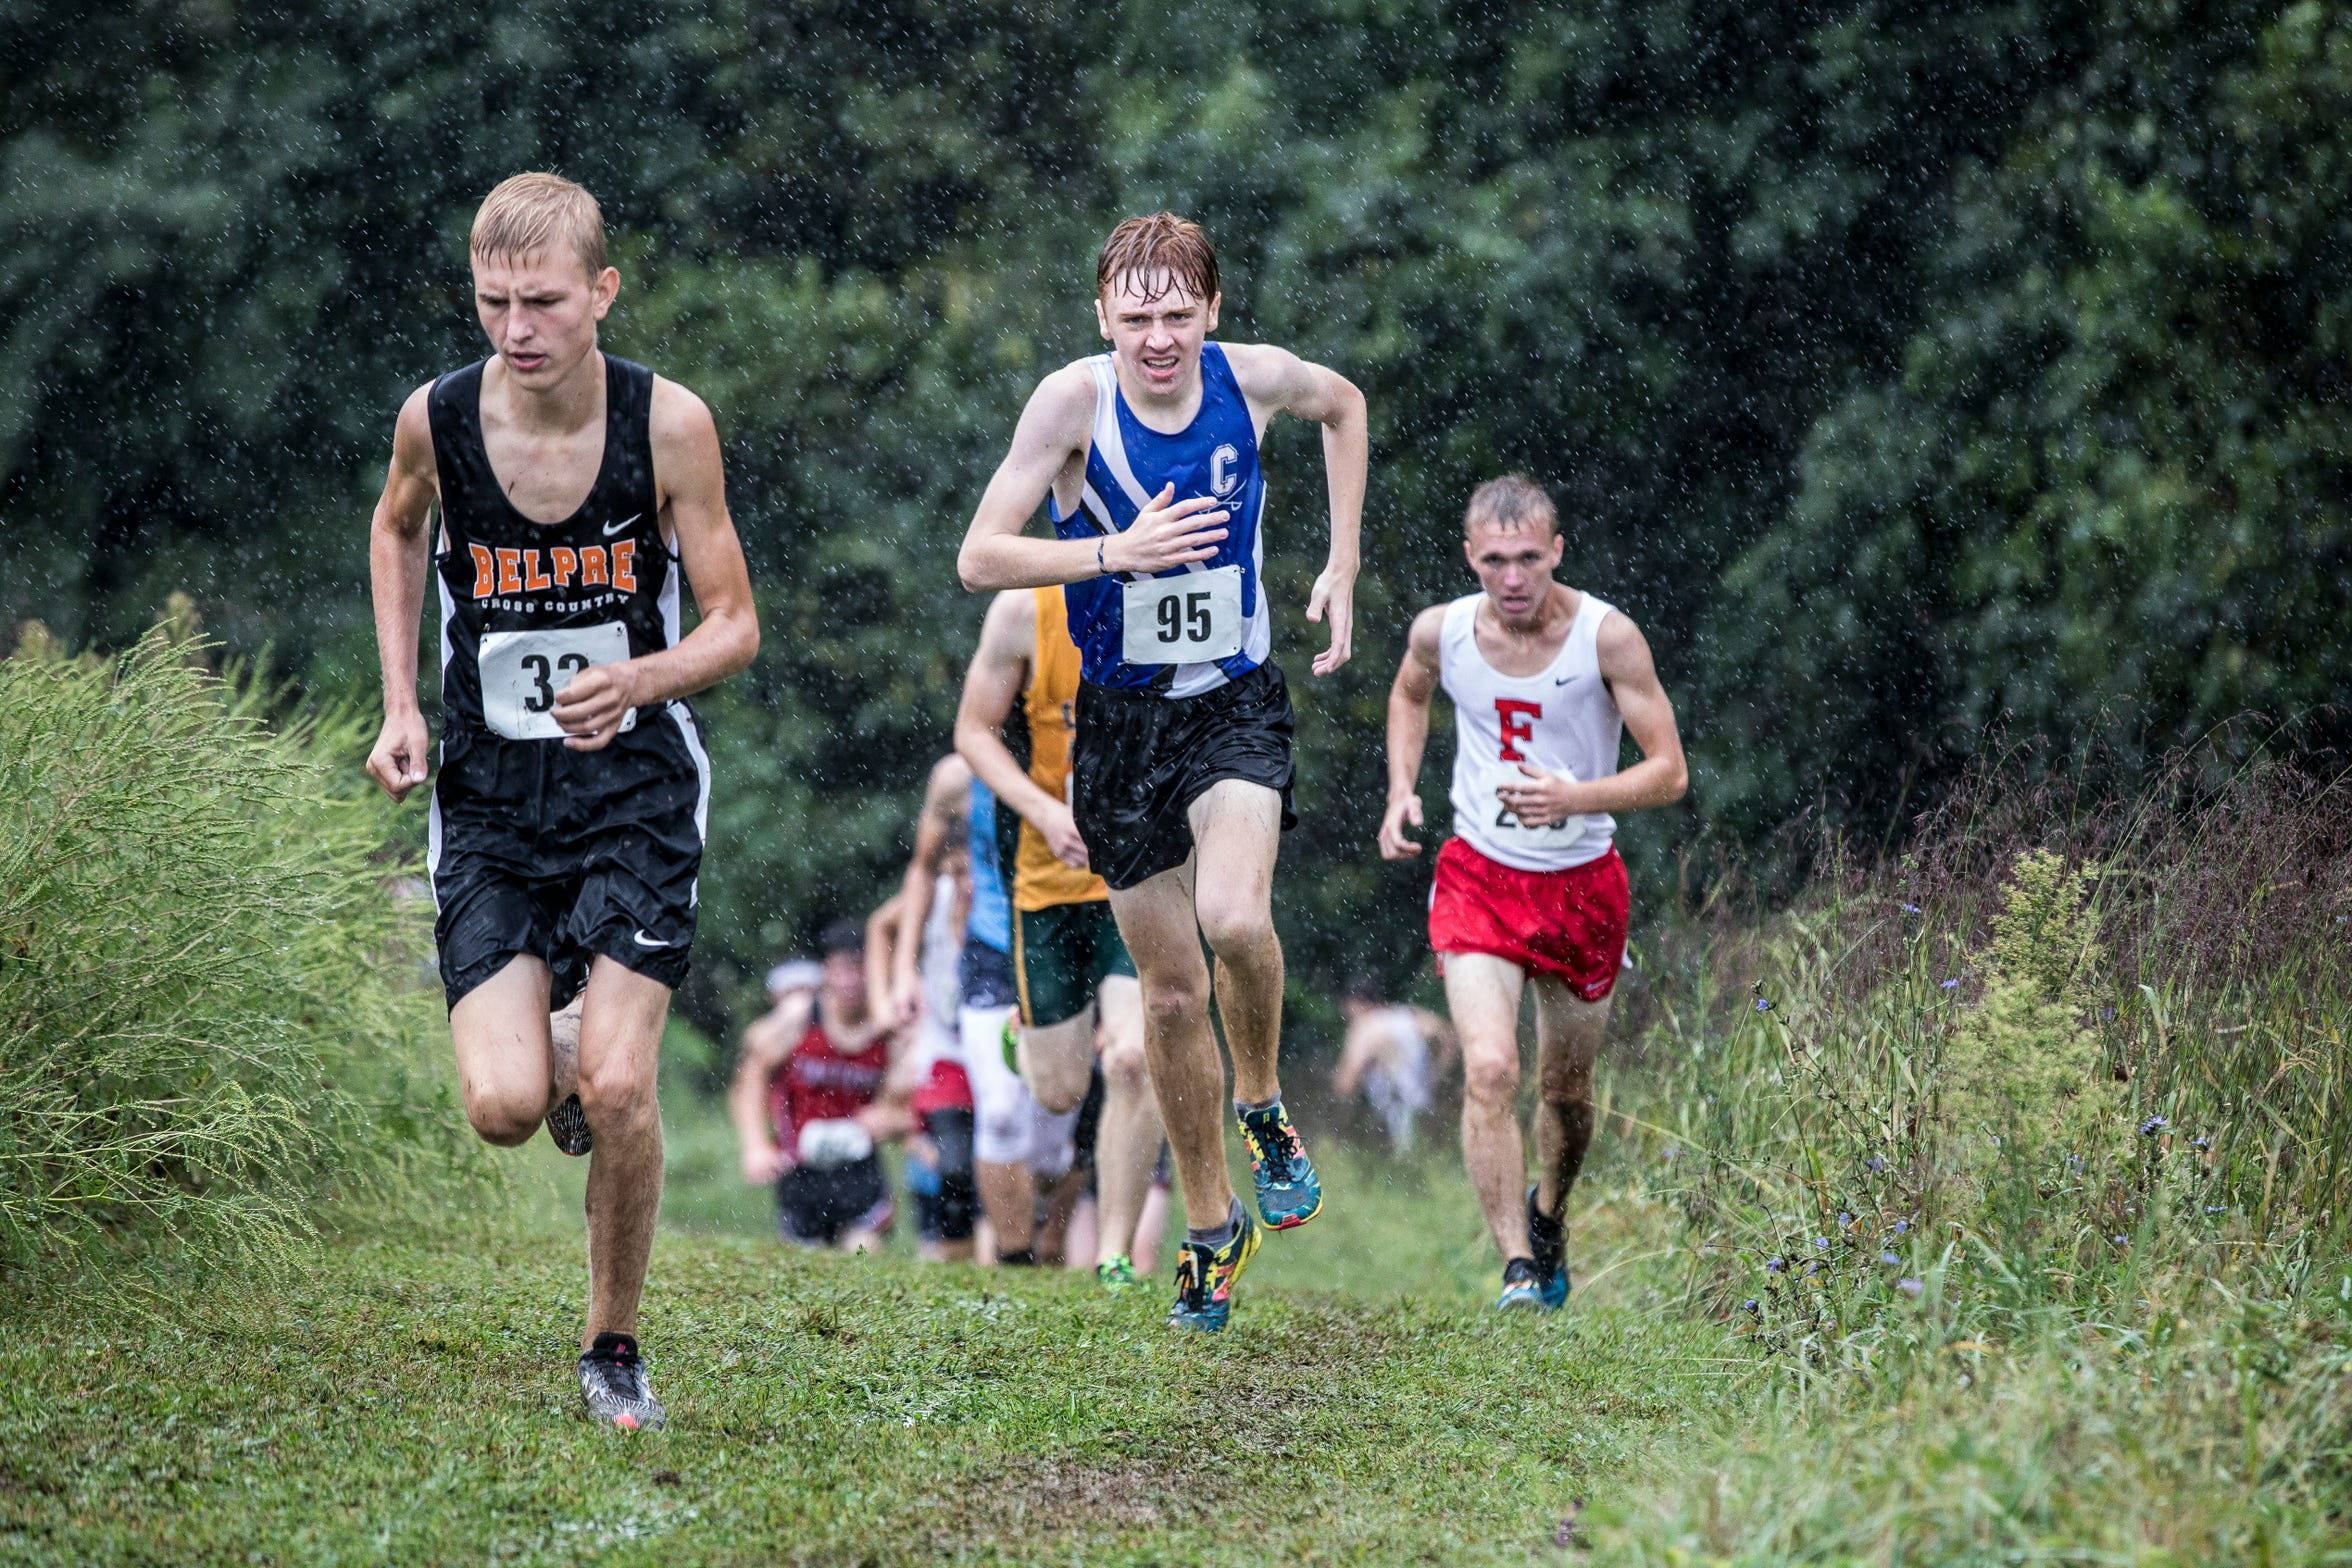 Fighting the rain and the mud, Chillicothe's Andrew McCallum, middle, took second place in one of his first local meets in the boys race during Zane Trace's annual cross-country invitational with a time of 18:02.63.